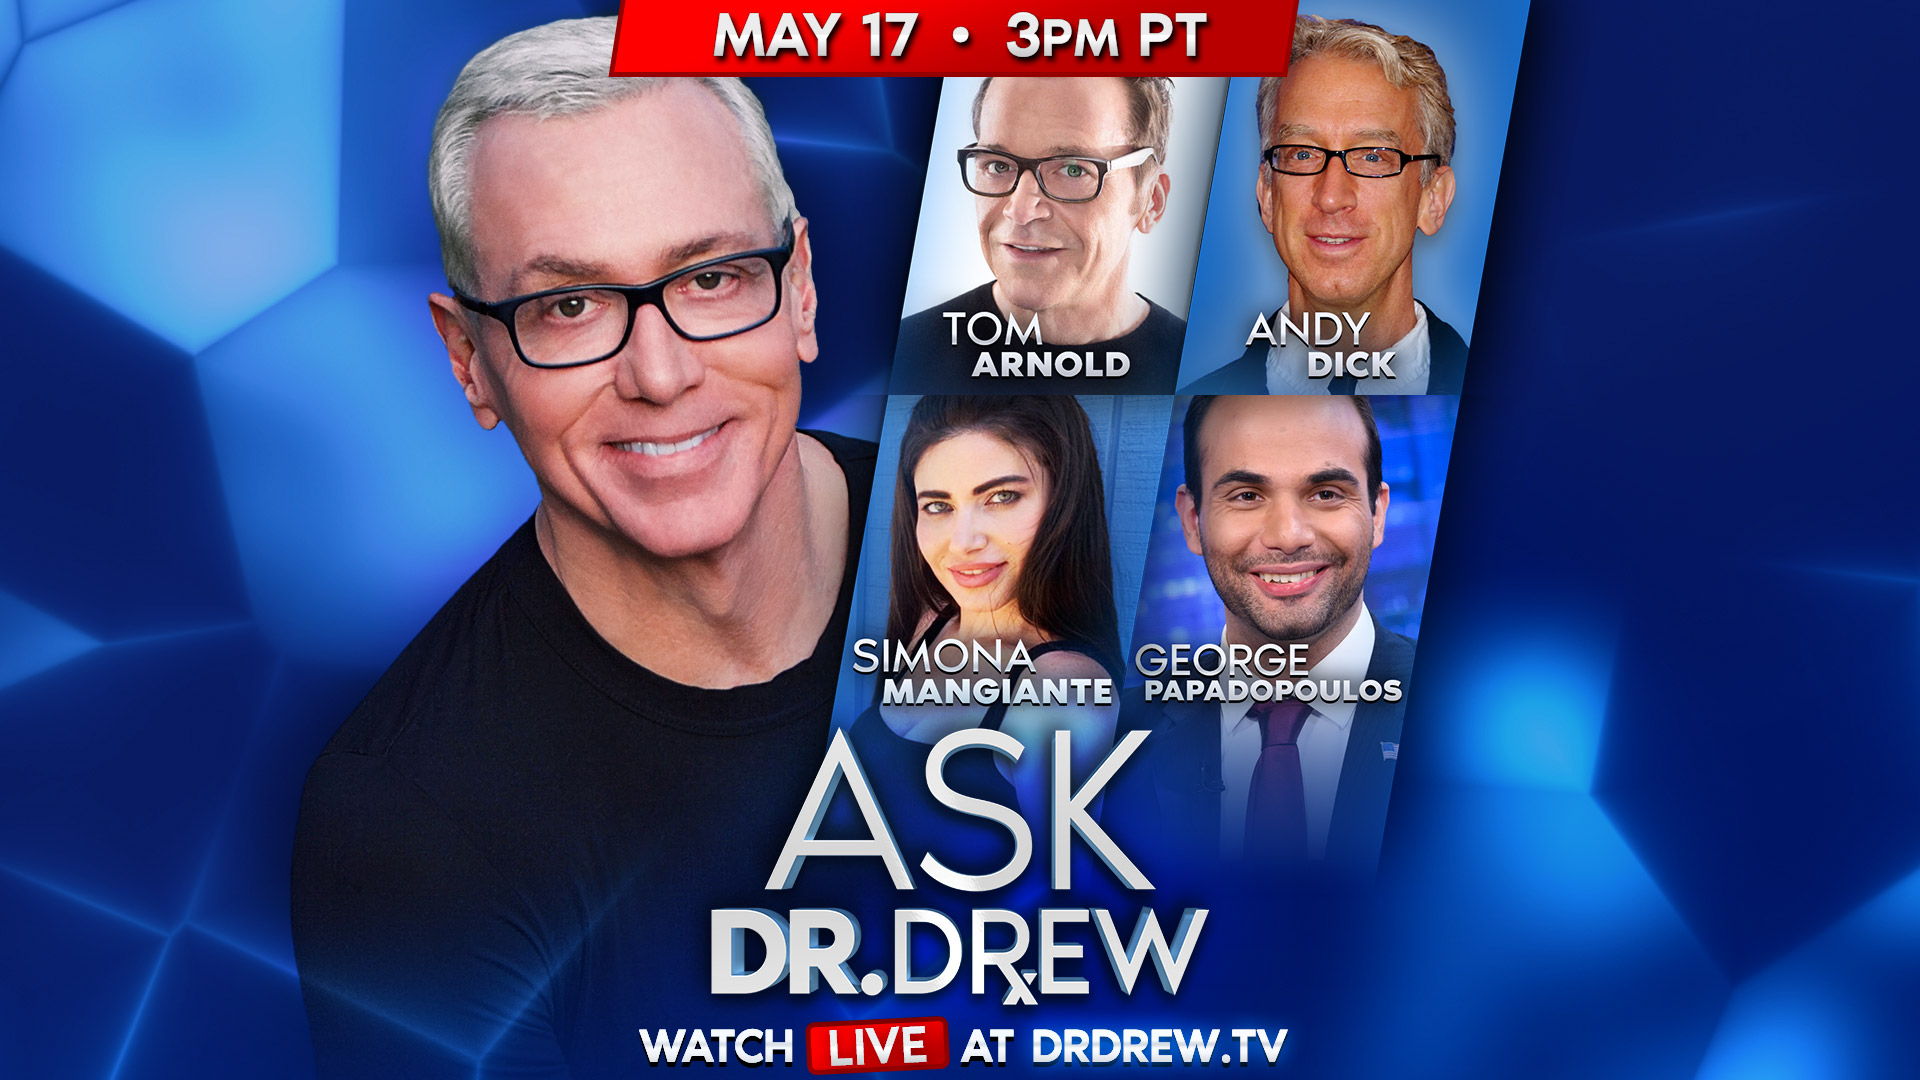 Ask Dr. Drew with Tom Arnold, Andy Dick, Simona Mangiante & George Papadopolous – 5/17/2020